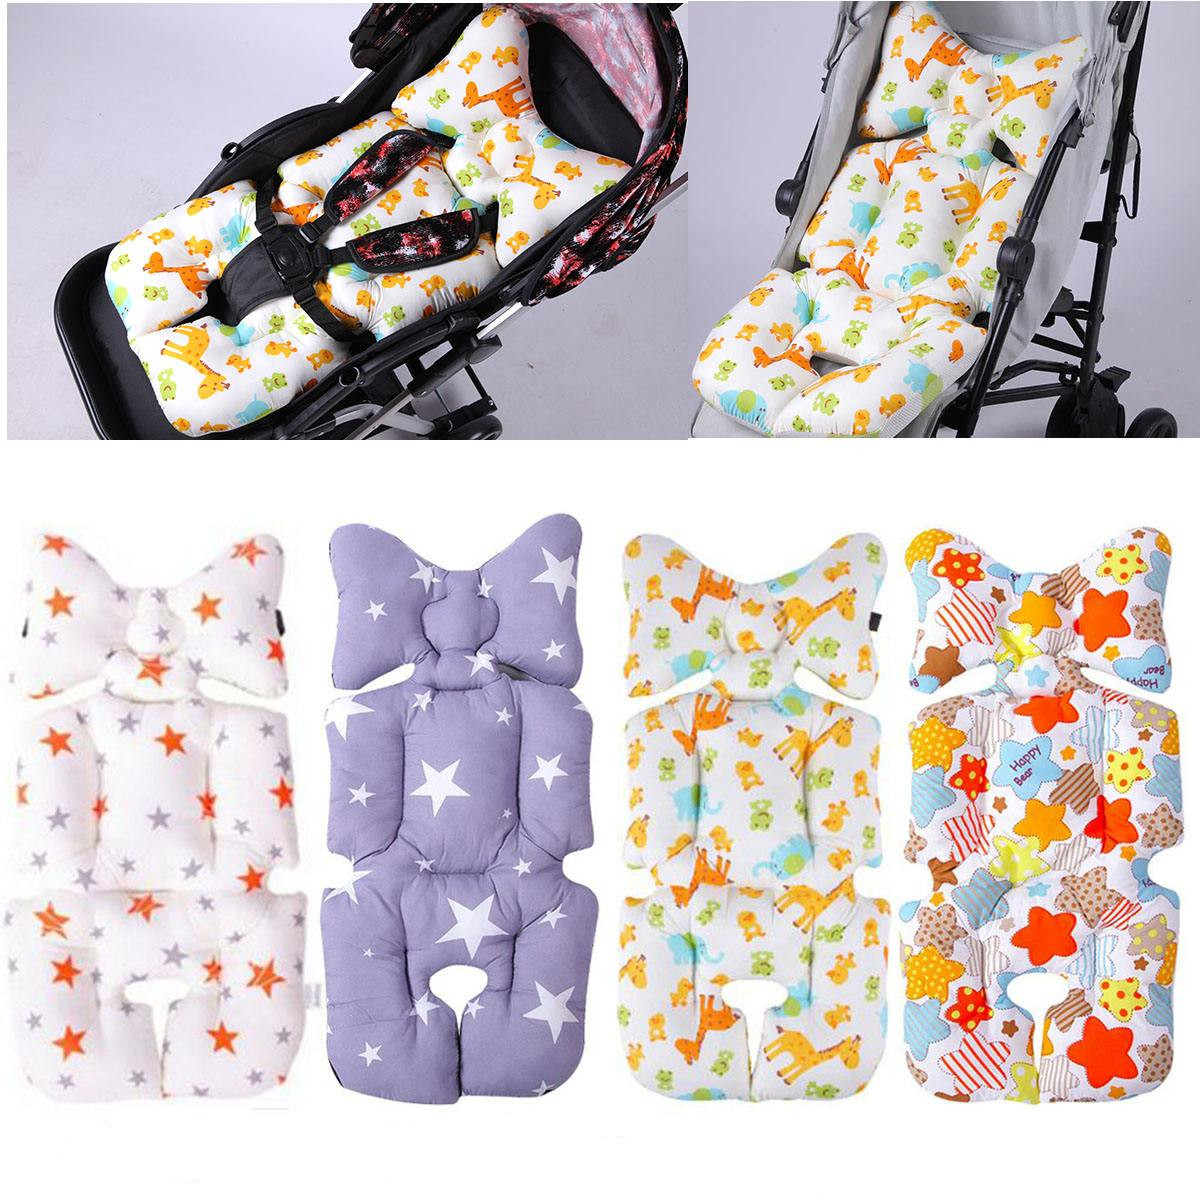 Baby Stroller Cotton Cushion Seat Cover Mat Breathable Soft Car Pad Pushchair Accessories Liner Cartoon Star Mattress Baby Cart